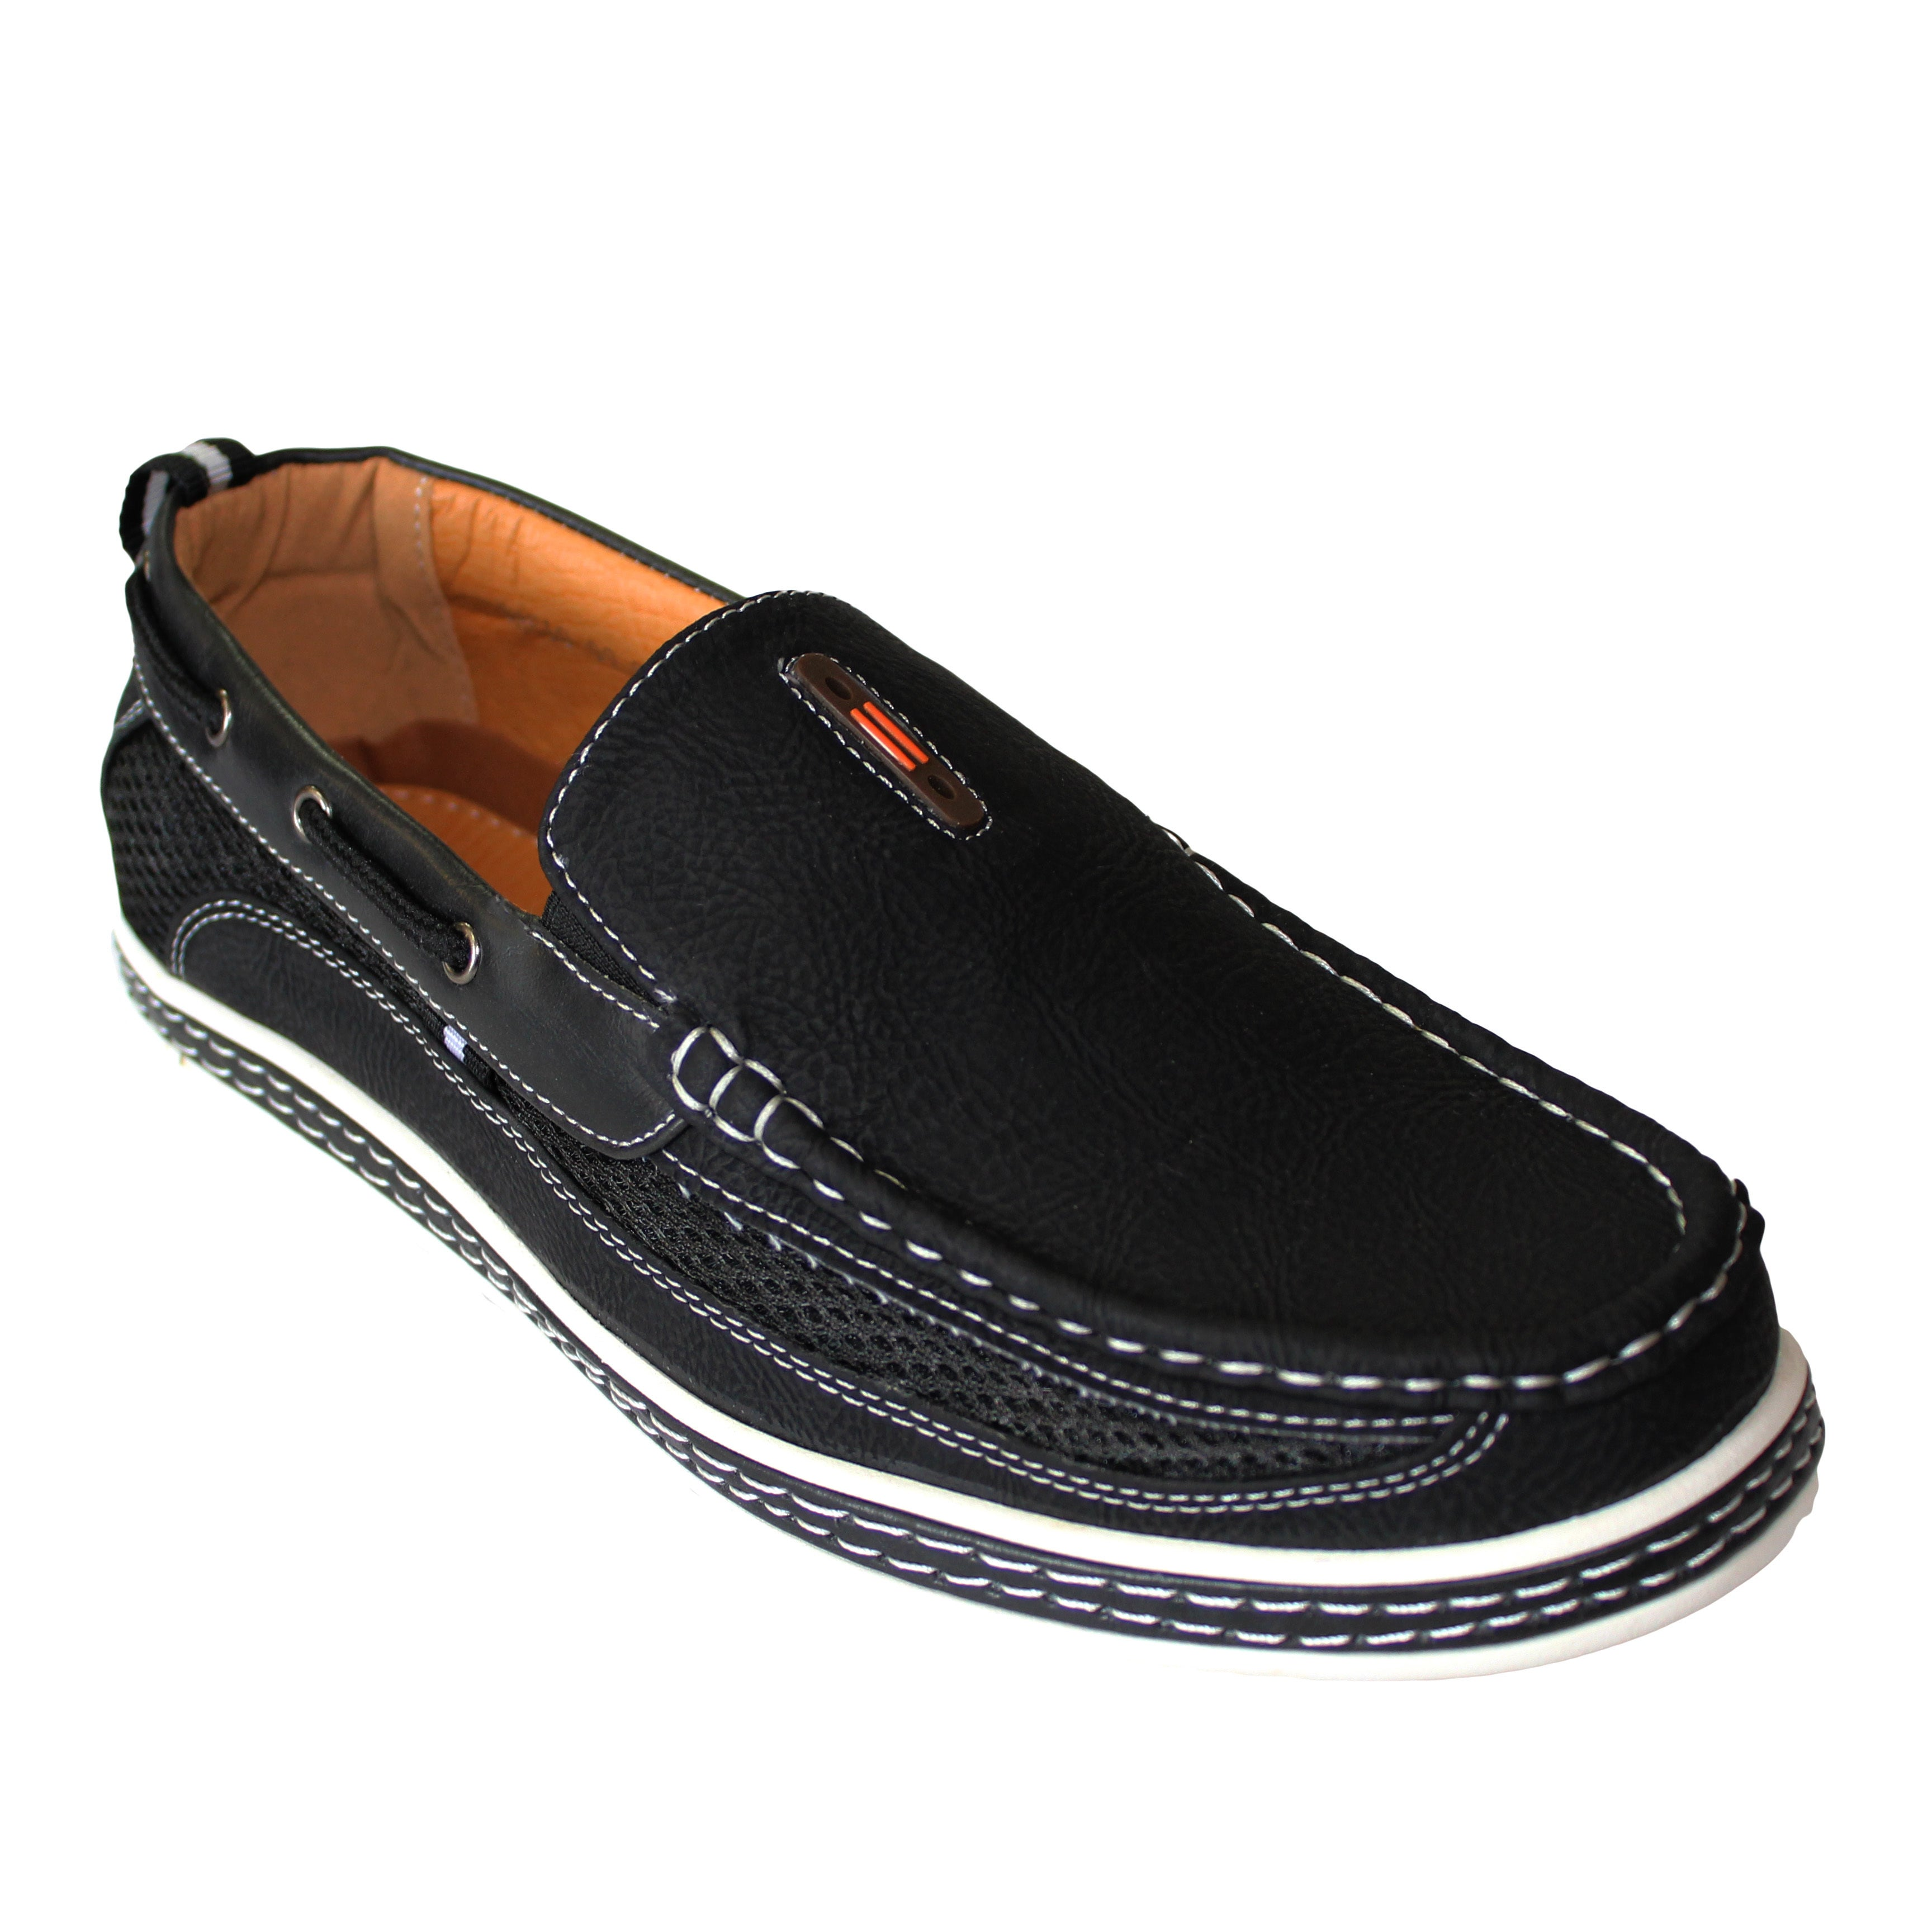 Shop Frenchic Collections Mens Slip On Loafers Free Shipping D Island Shoes Casual Comfort Suede Black Orders Over 45 12405838